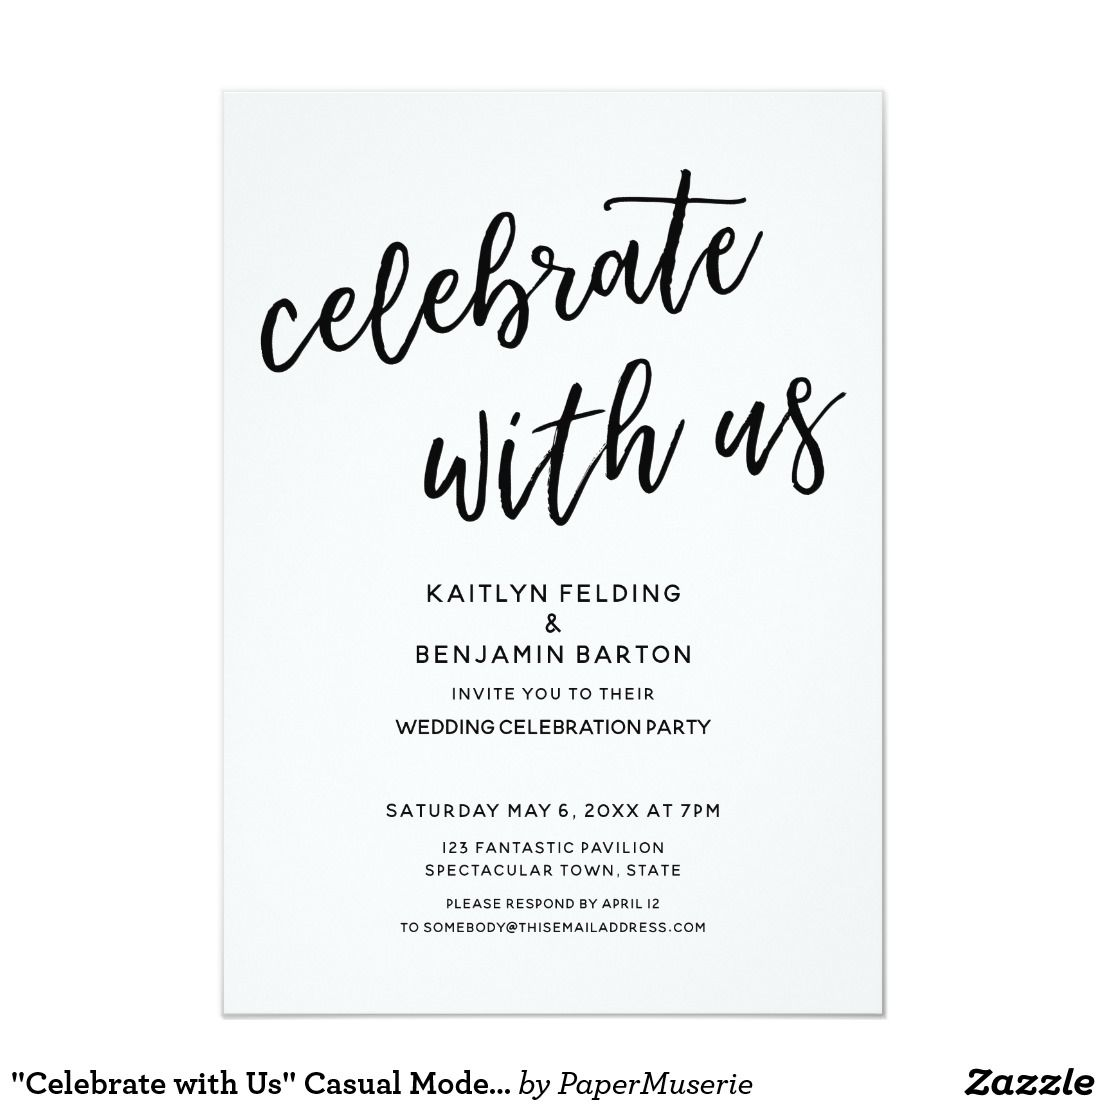 Celebrate With Us Casual Modern Wedding Party Invitation Zazzle Com Wedding Party Invites Wedding Reception Invitations Wedding Party Cards